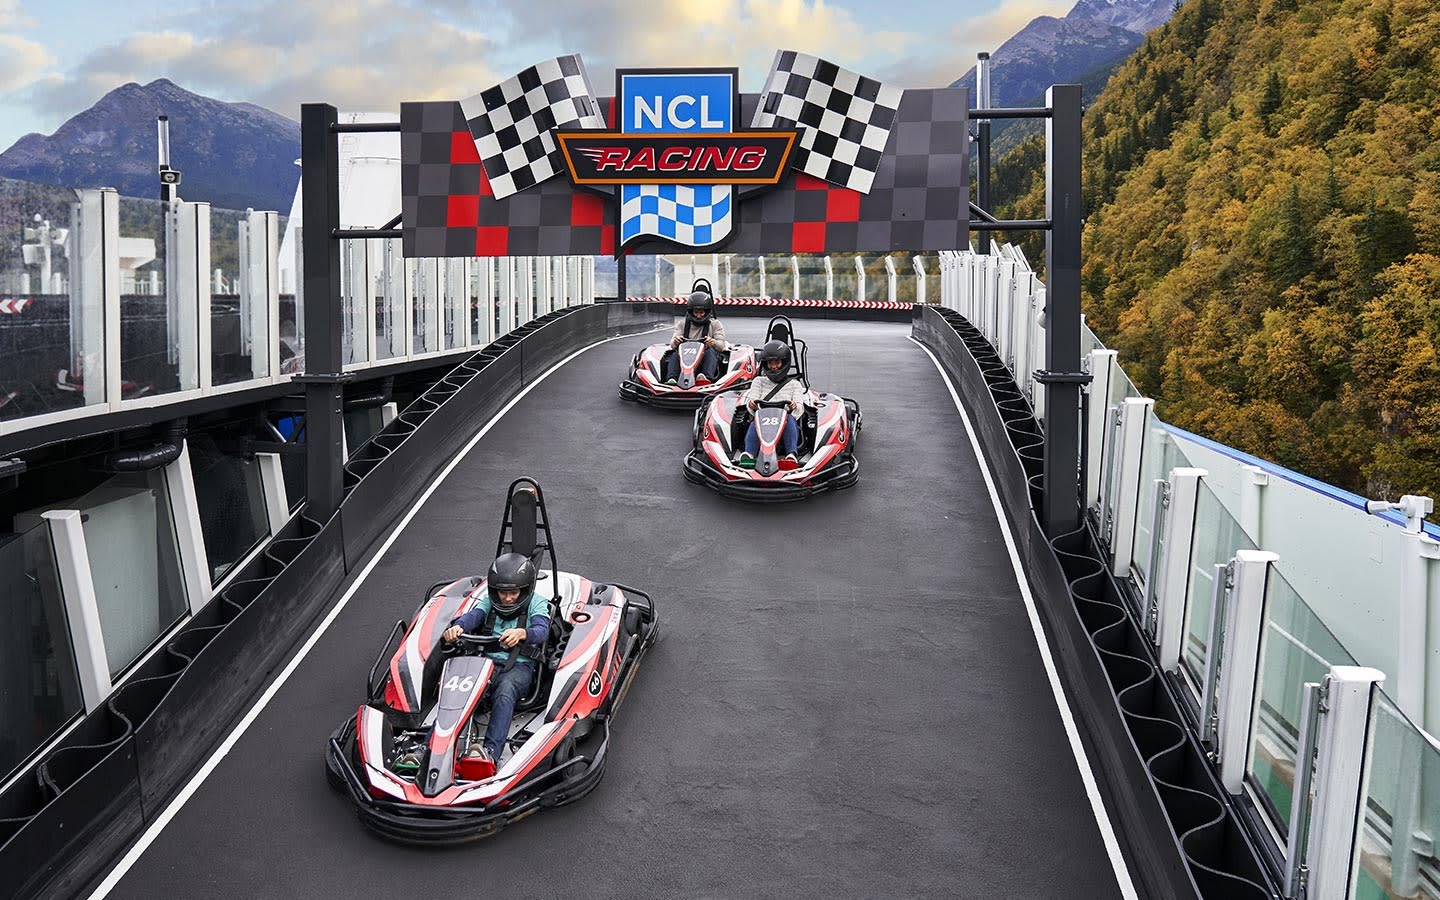 NCL Bliss Go Kart racetrack